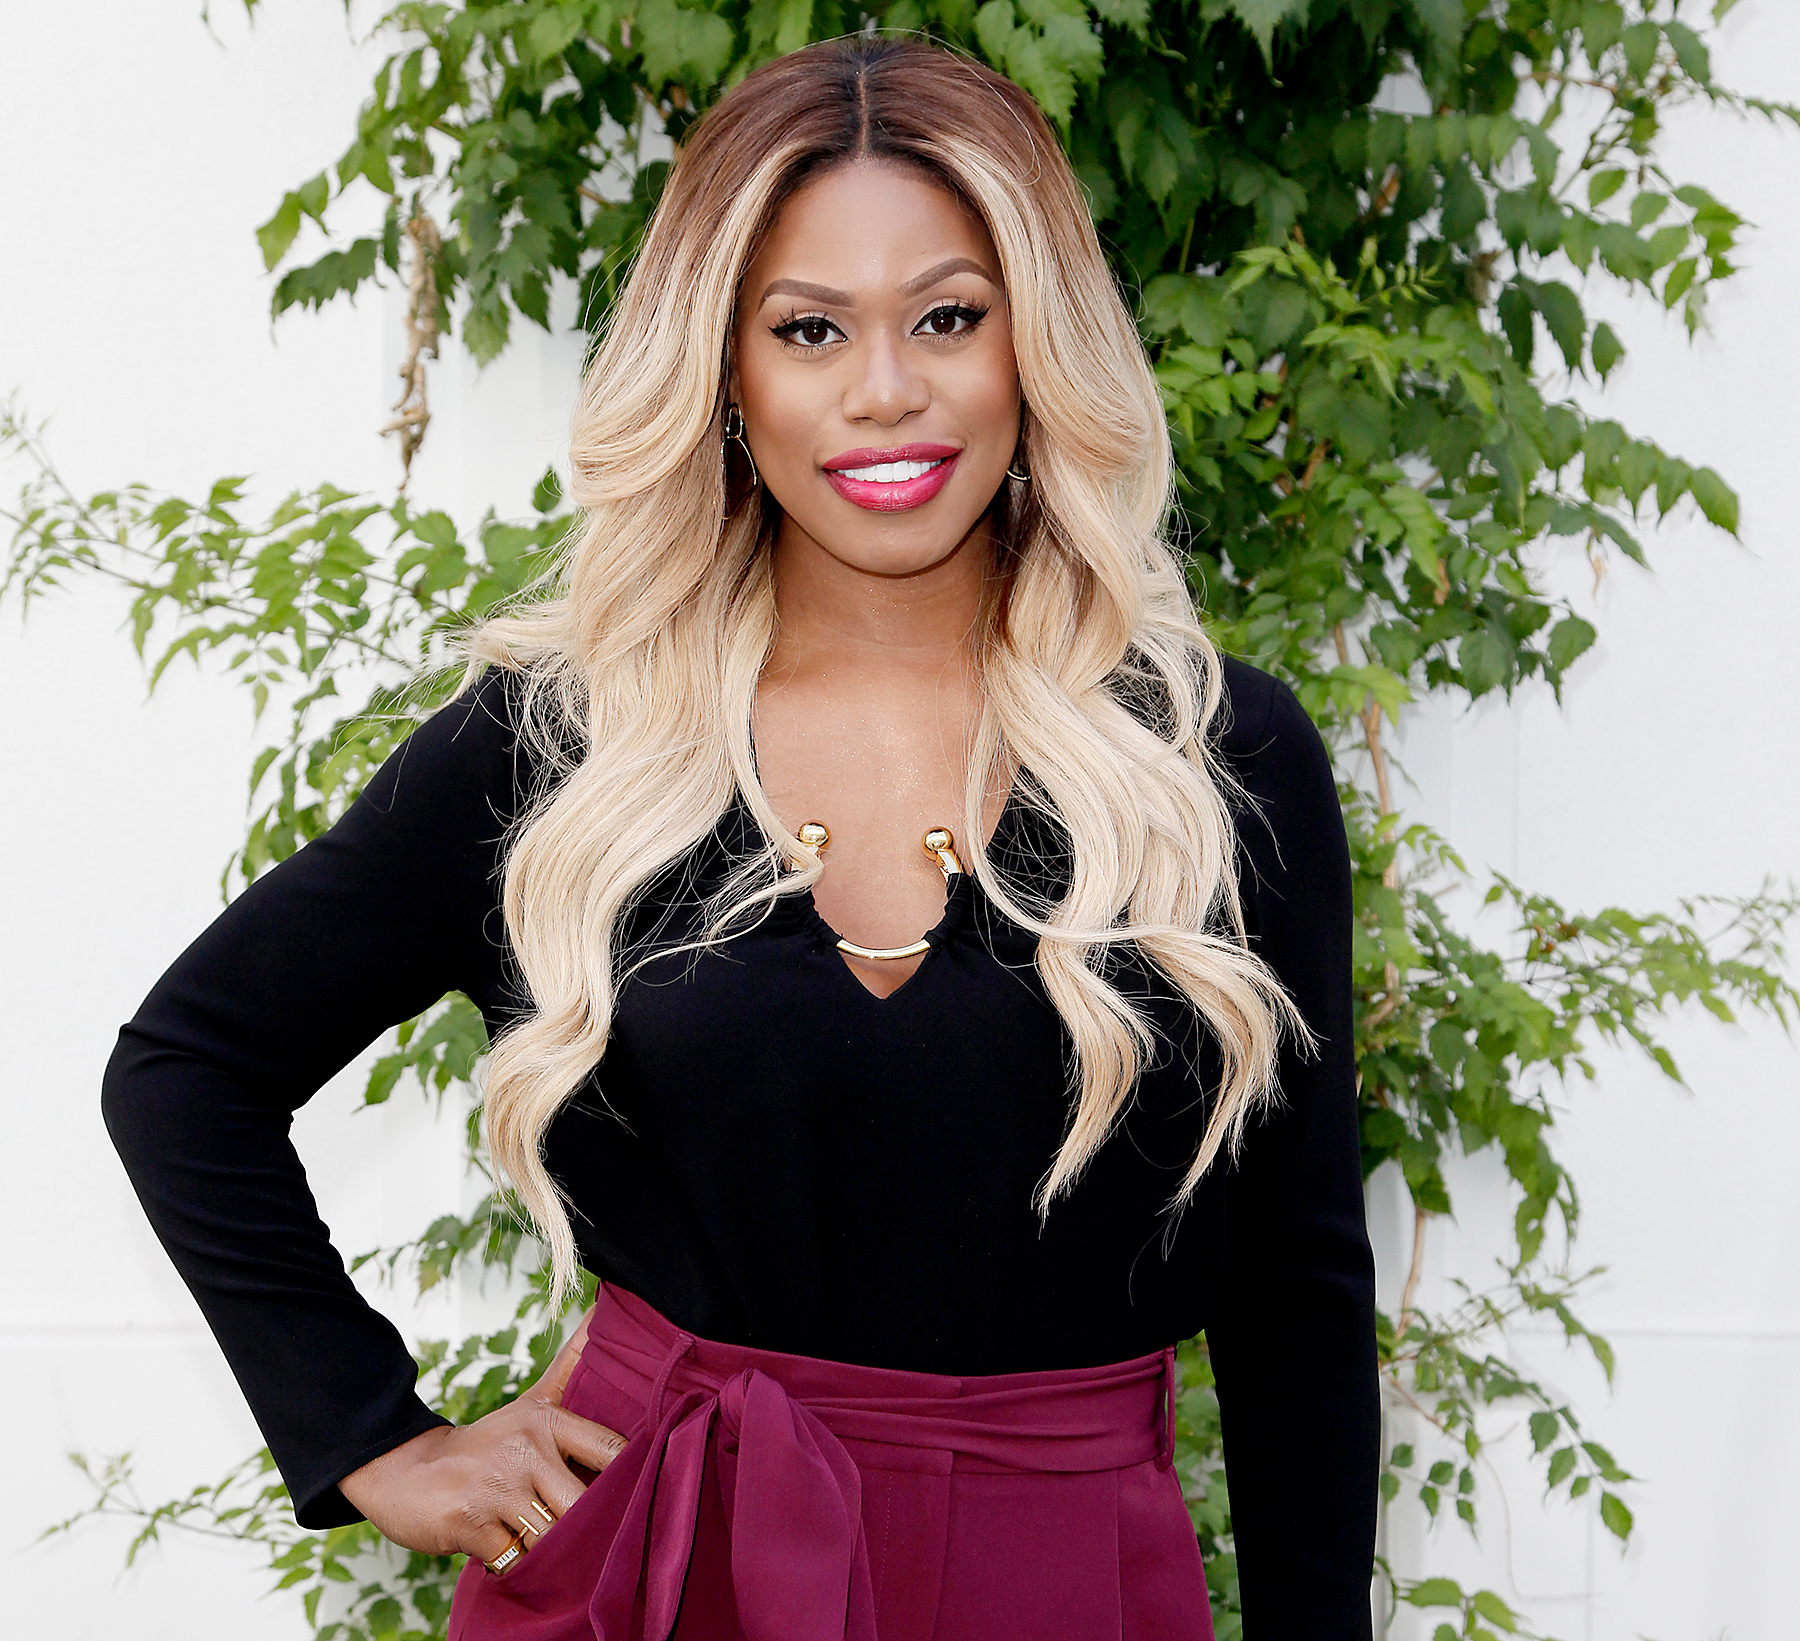 Laverne-Cox - Laverne Cox attends the 'Who Do You Think You Are?'